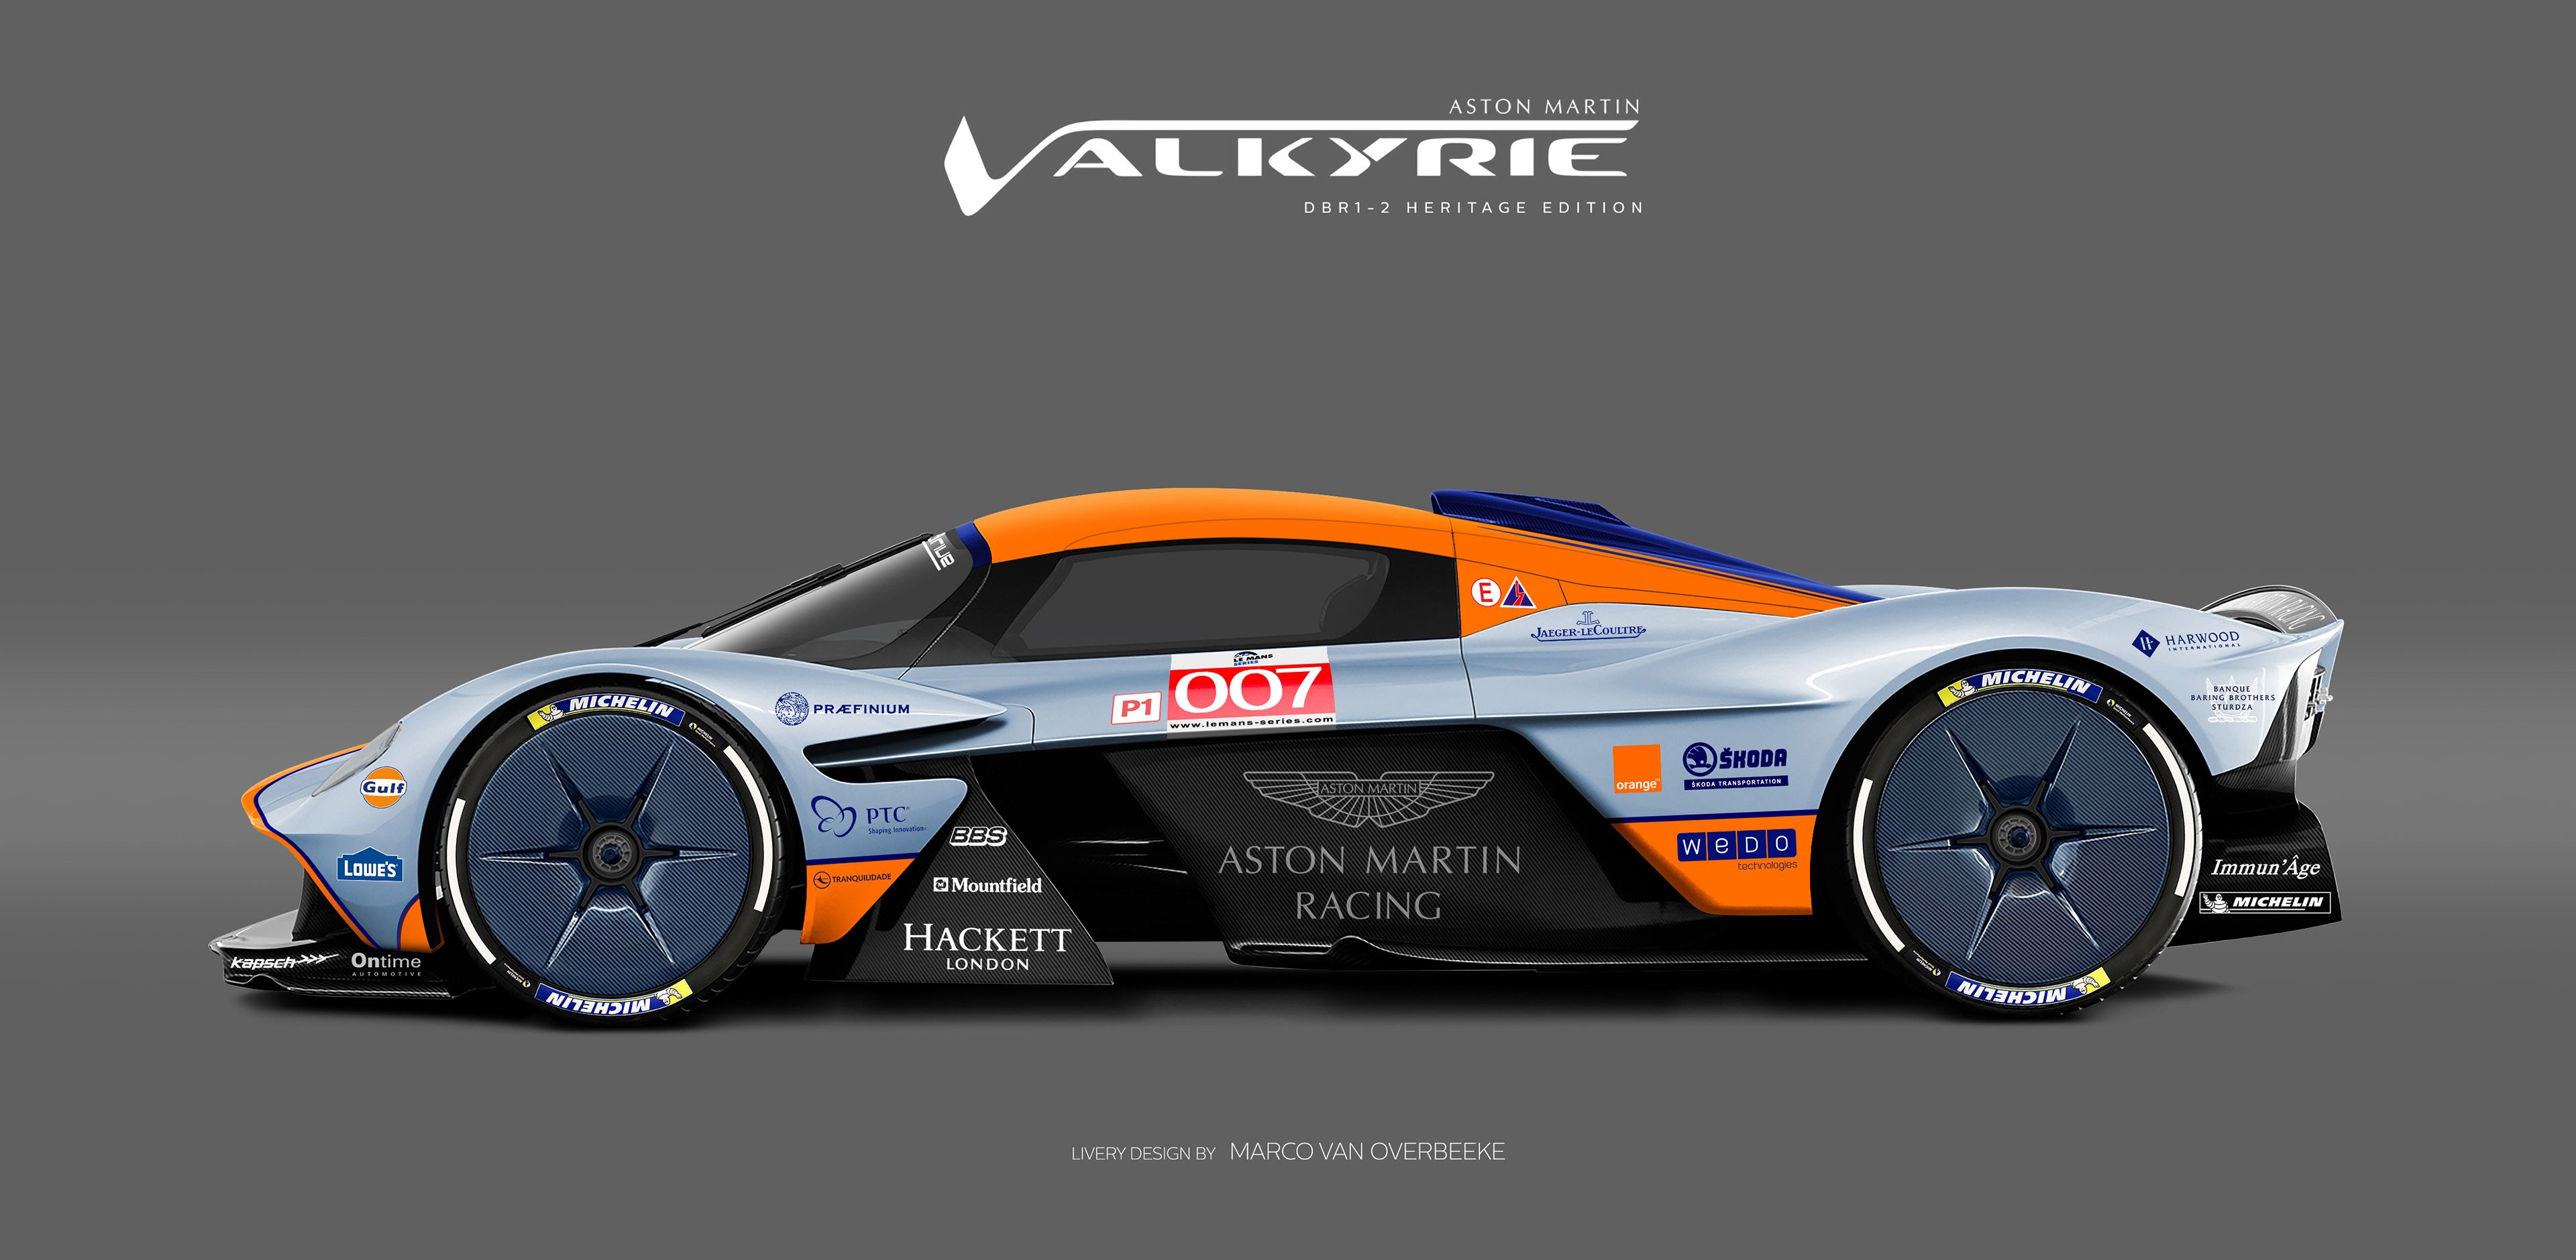 Aston Martin Valkyrie Livery Project Gulf Dbr1 2 Hommage Edition